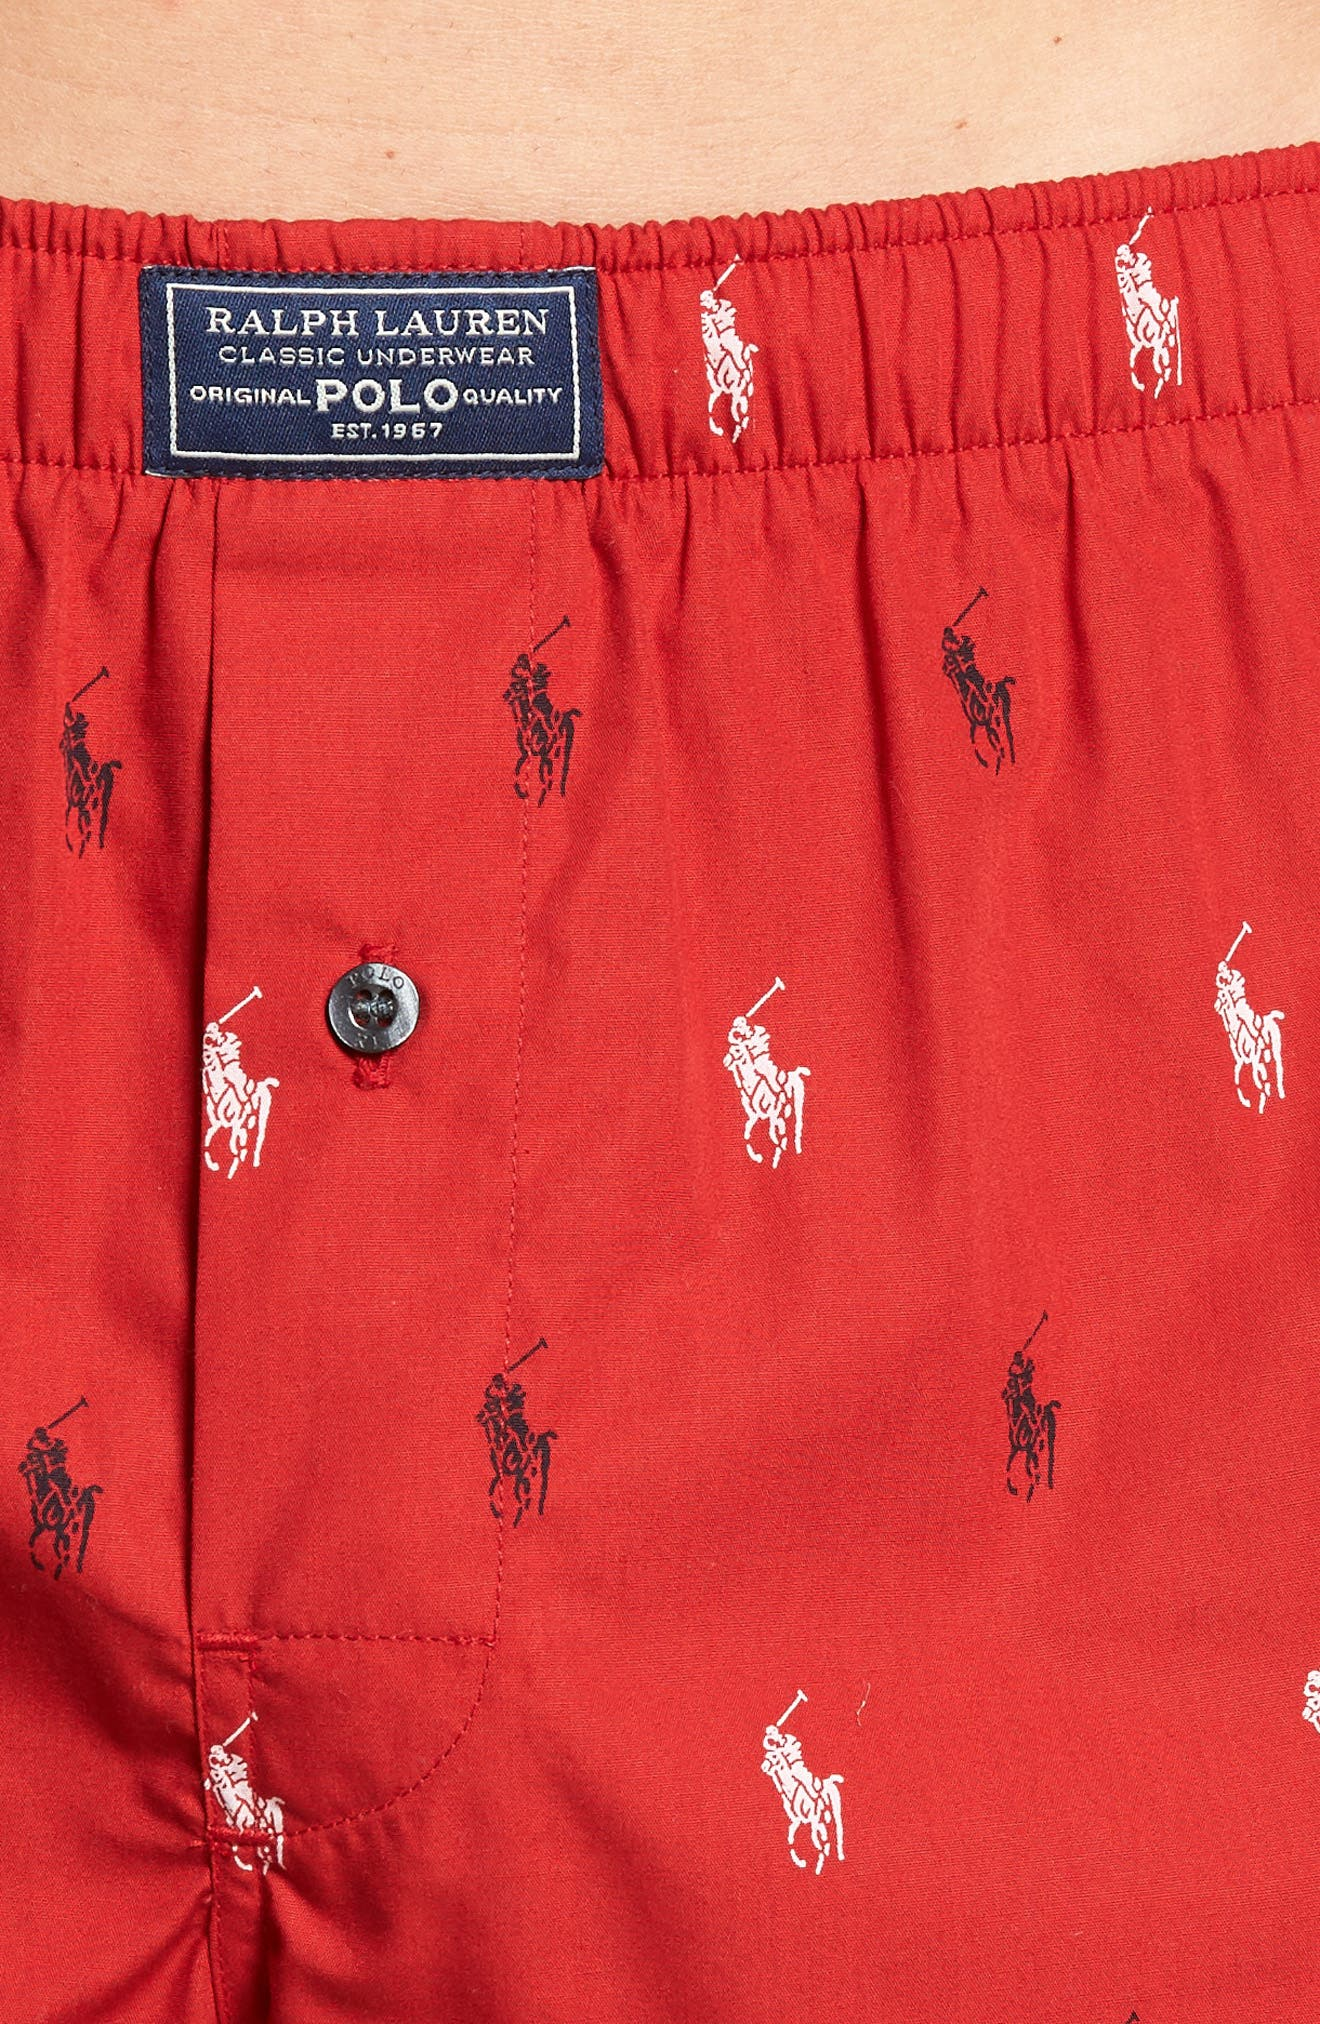 Cotton Boxers,                             Alternate thumbnail 4, color,                             RL RED/ CRUISE NAVY/ WHITE